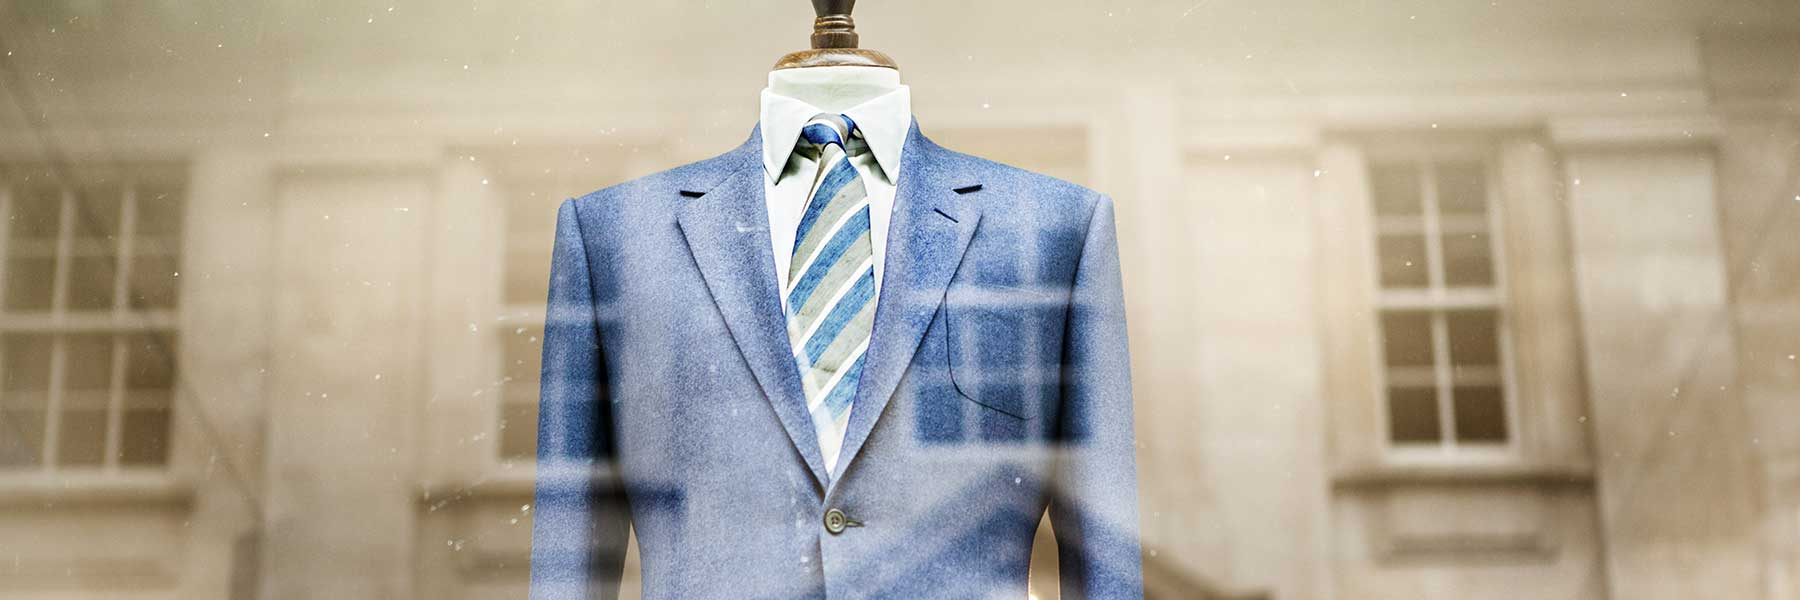 Suit the City, Oxford Tailor